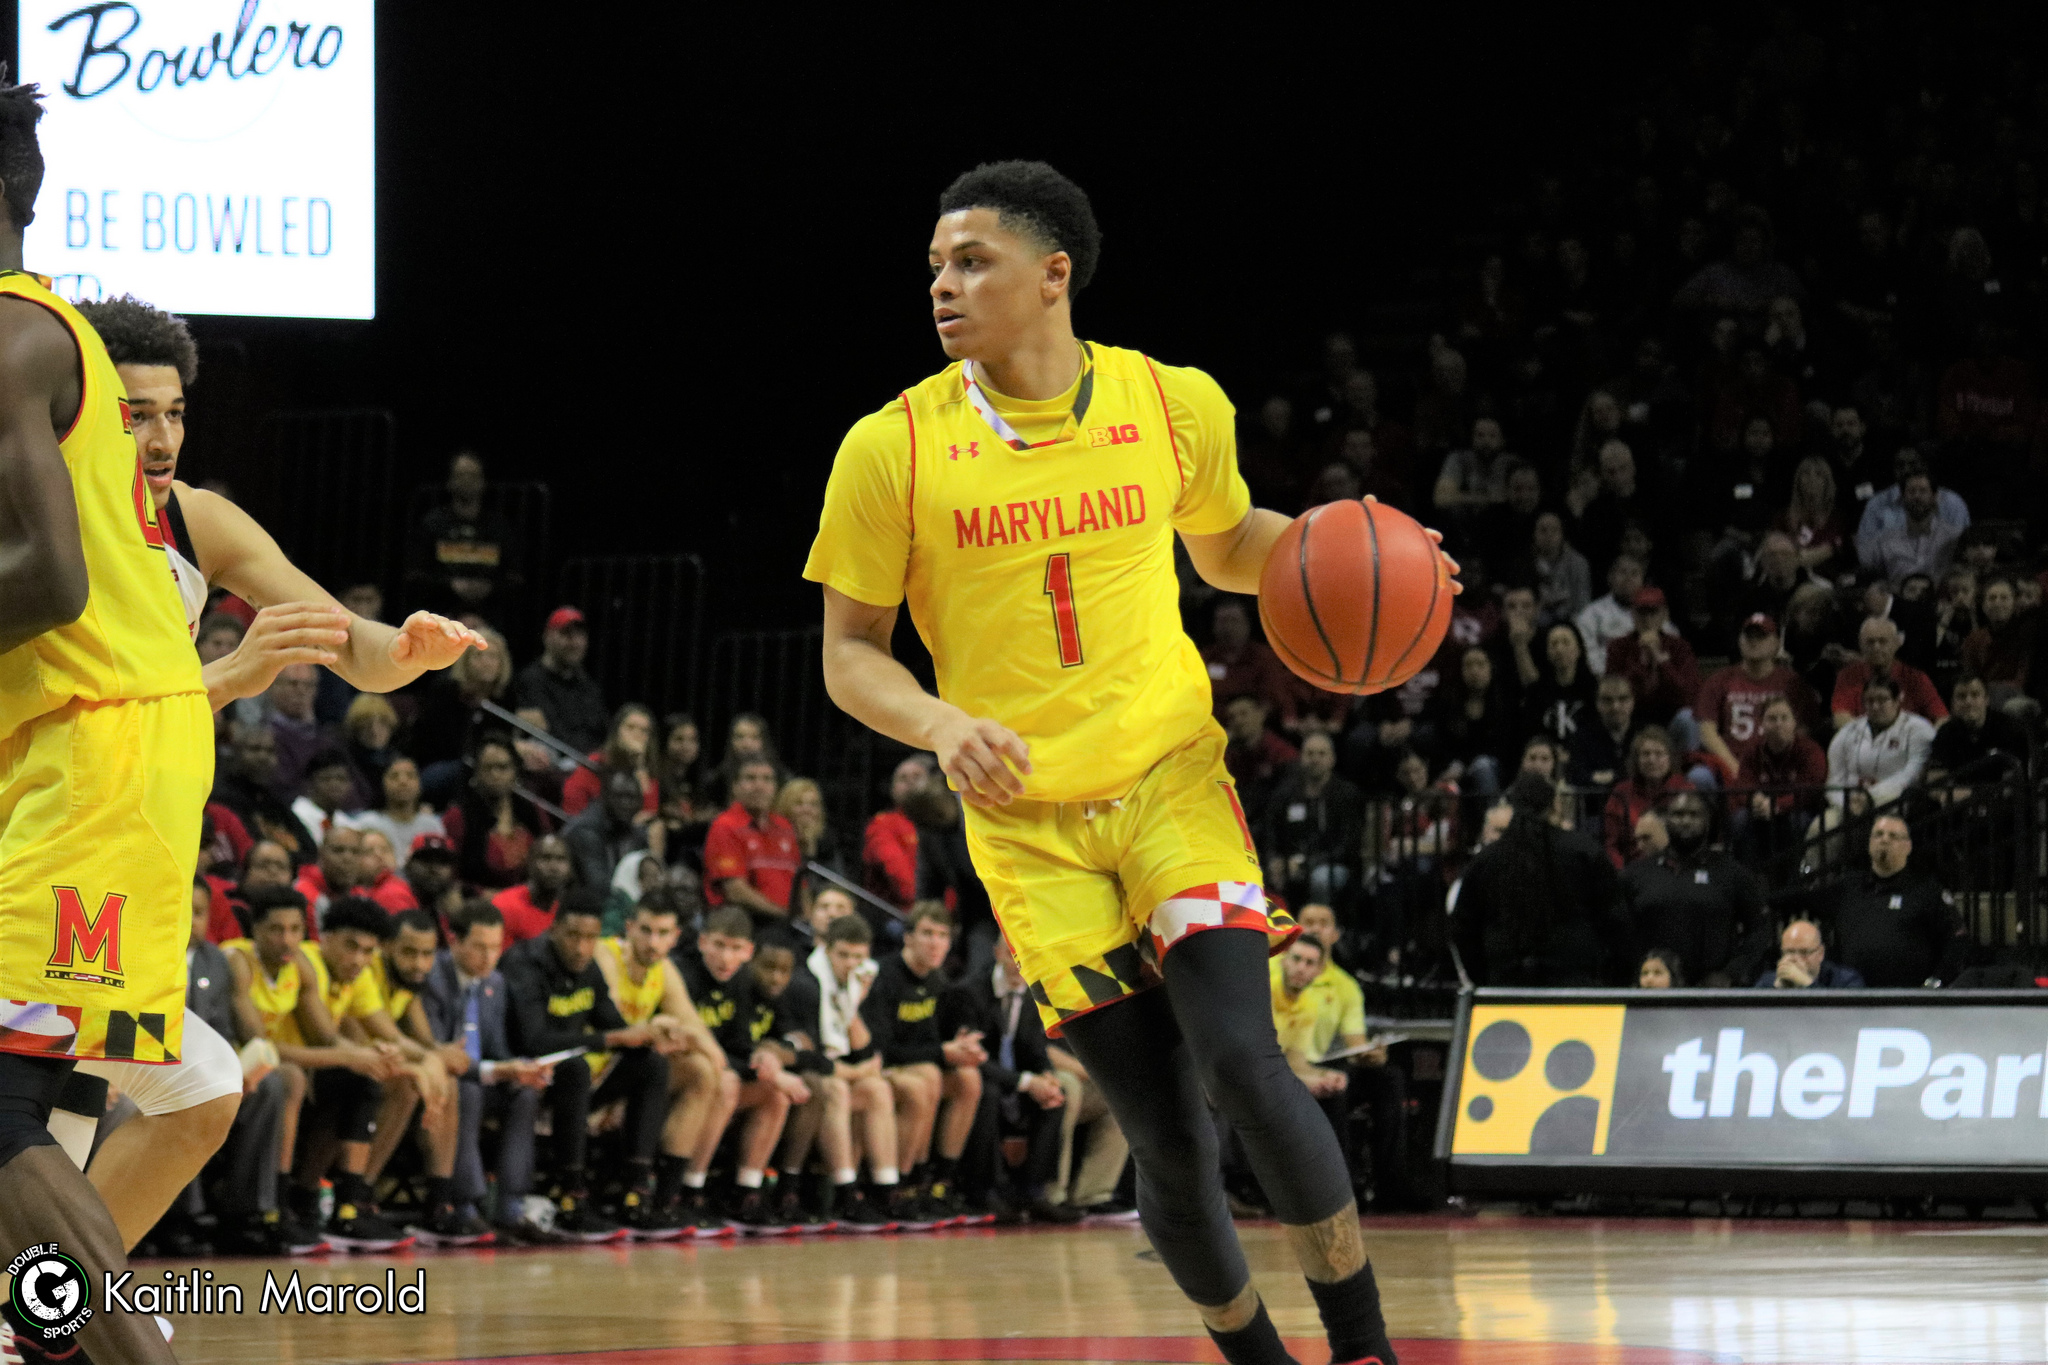 College Hoops Preview: Maryland vs Minnesota